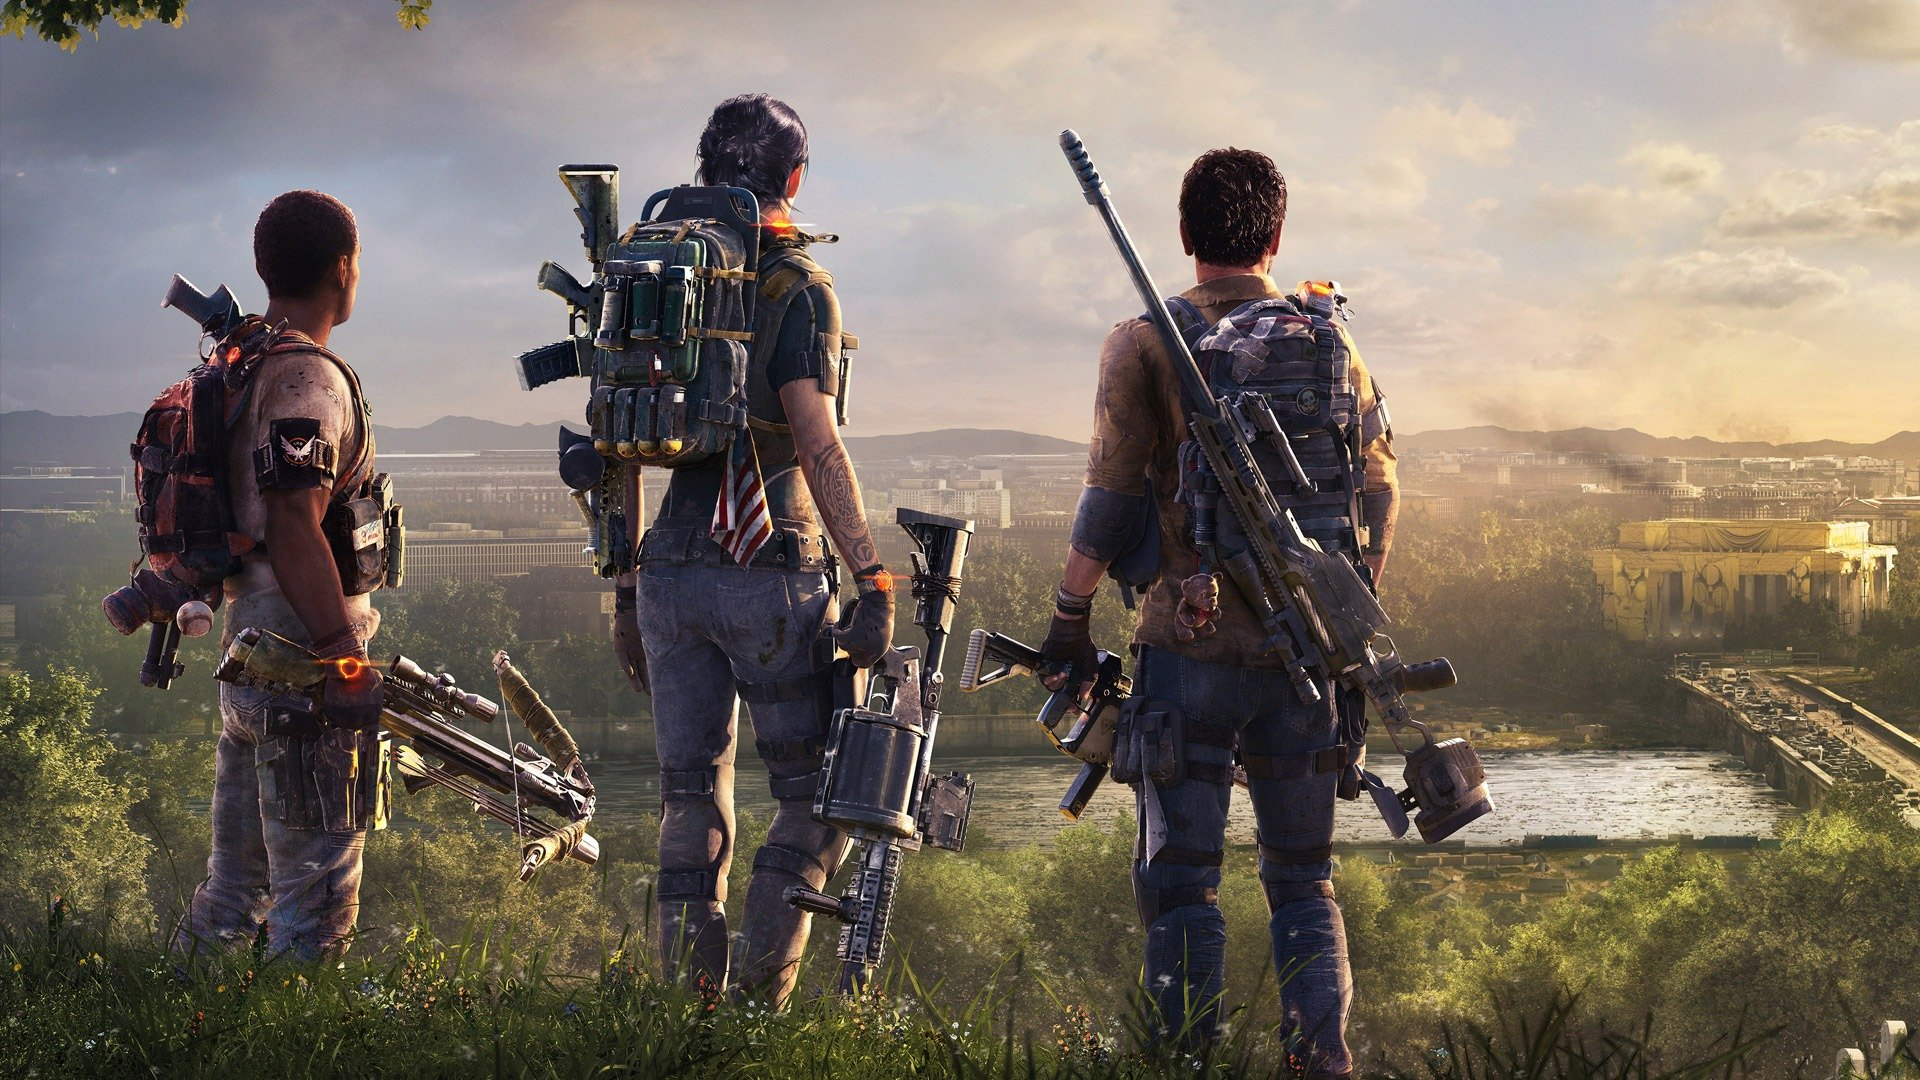 Notable changes are being made to things like the Occupied Dark Zone in Tom Clancy's The Division 2.